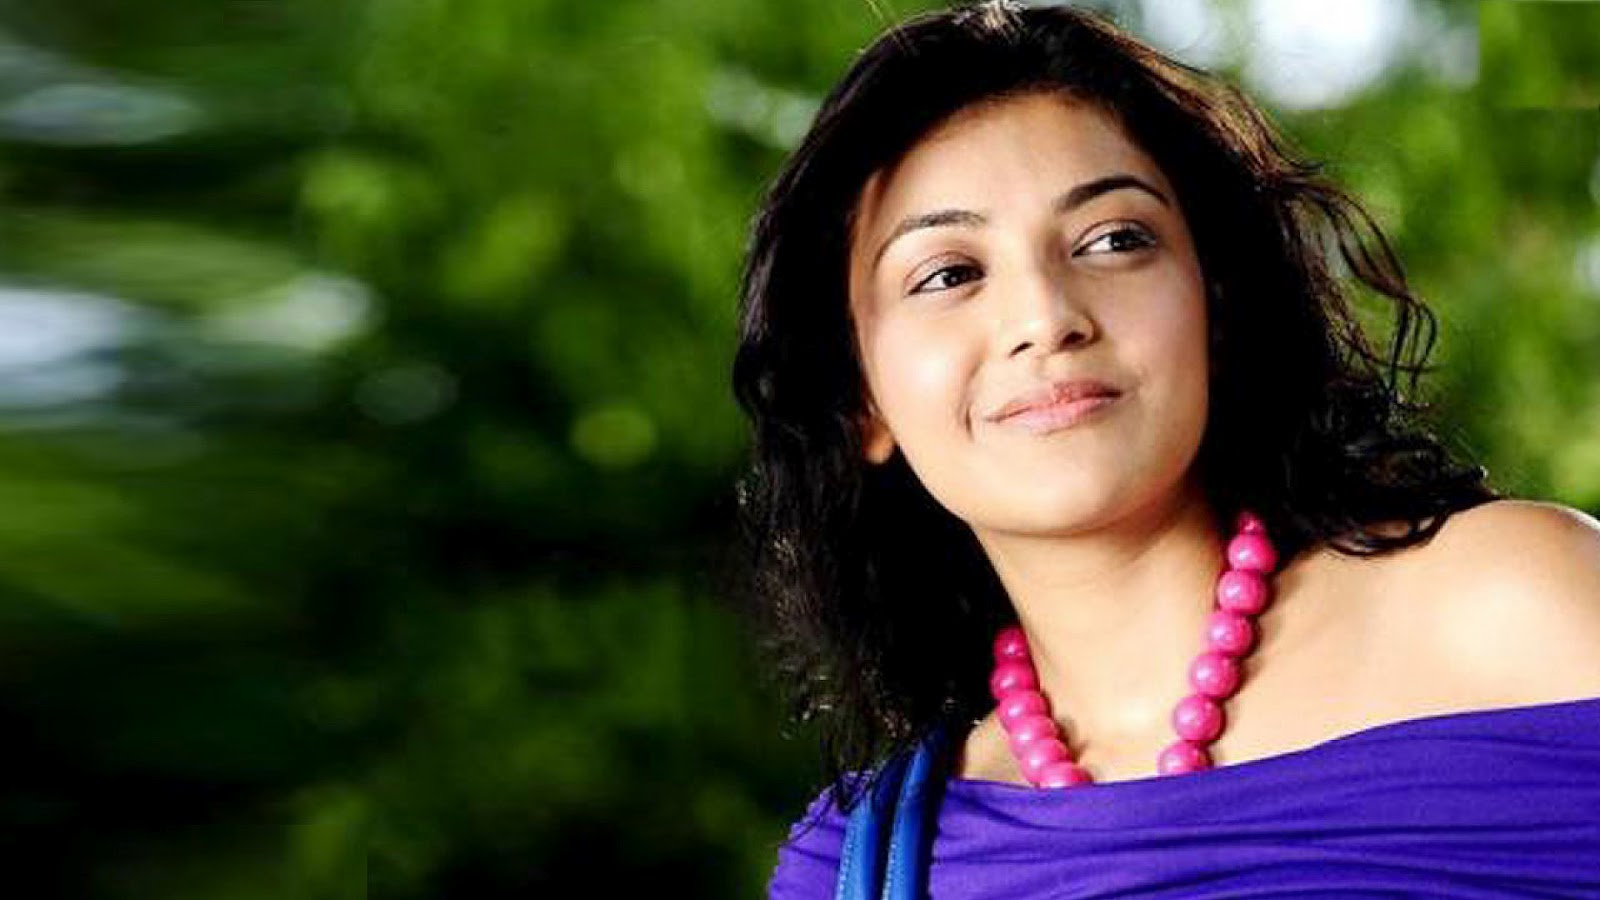 Preview Kajal Agarwal Wallpaper By Andy Edmeades - Hot top 35 kajal aggarwal wallpapers hd images photos collection